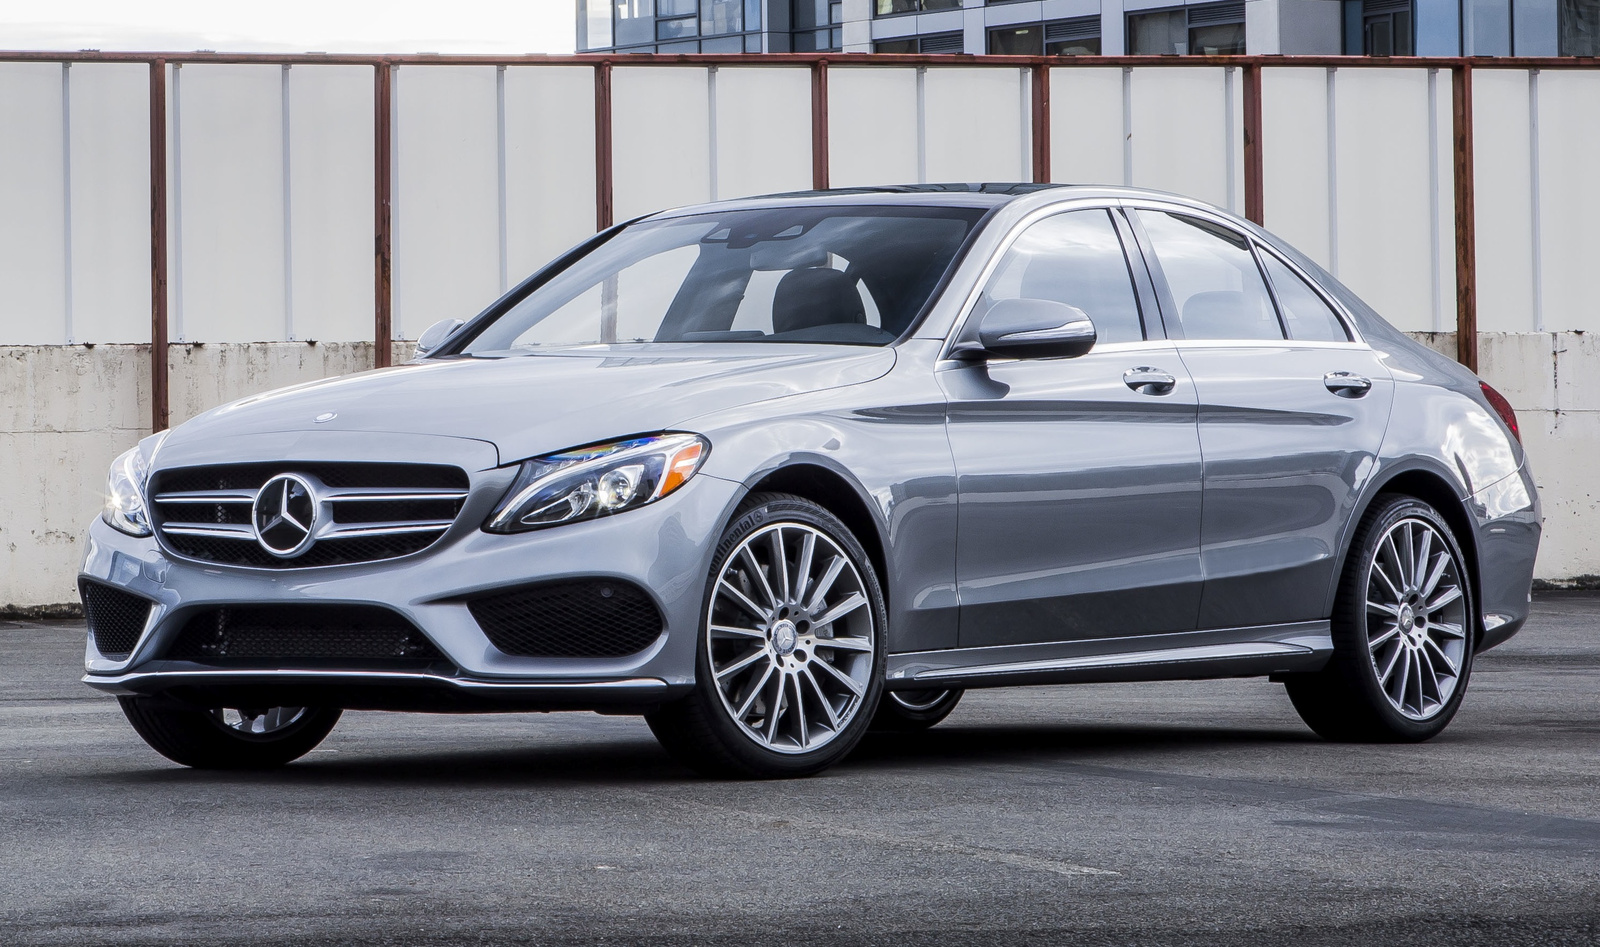 2015 mercedes benz c class review cargurus for Mercedes benz c250 cargurus